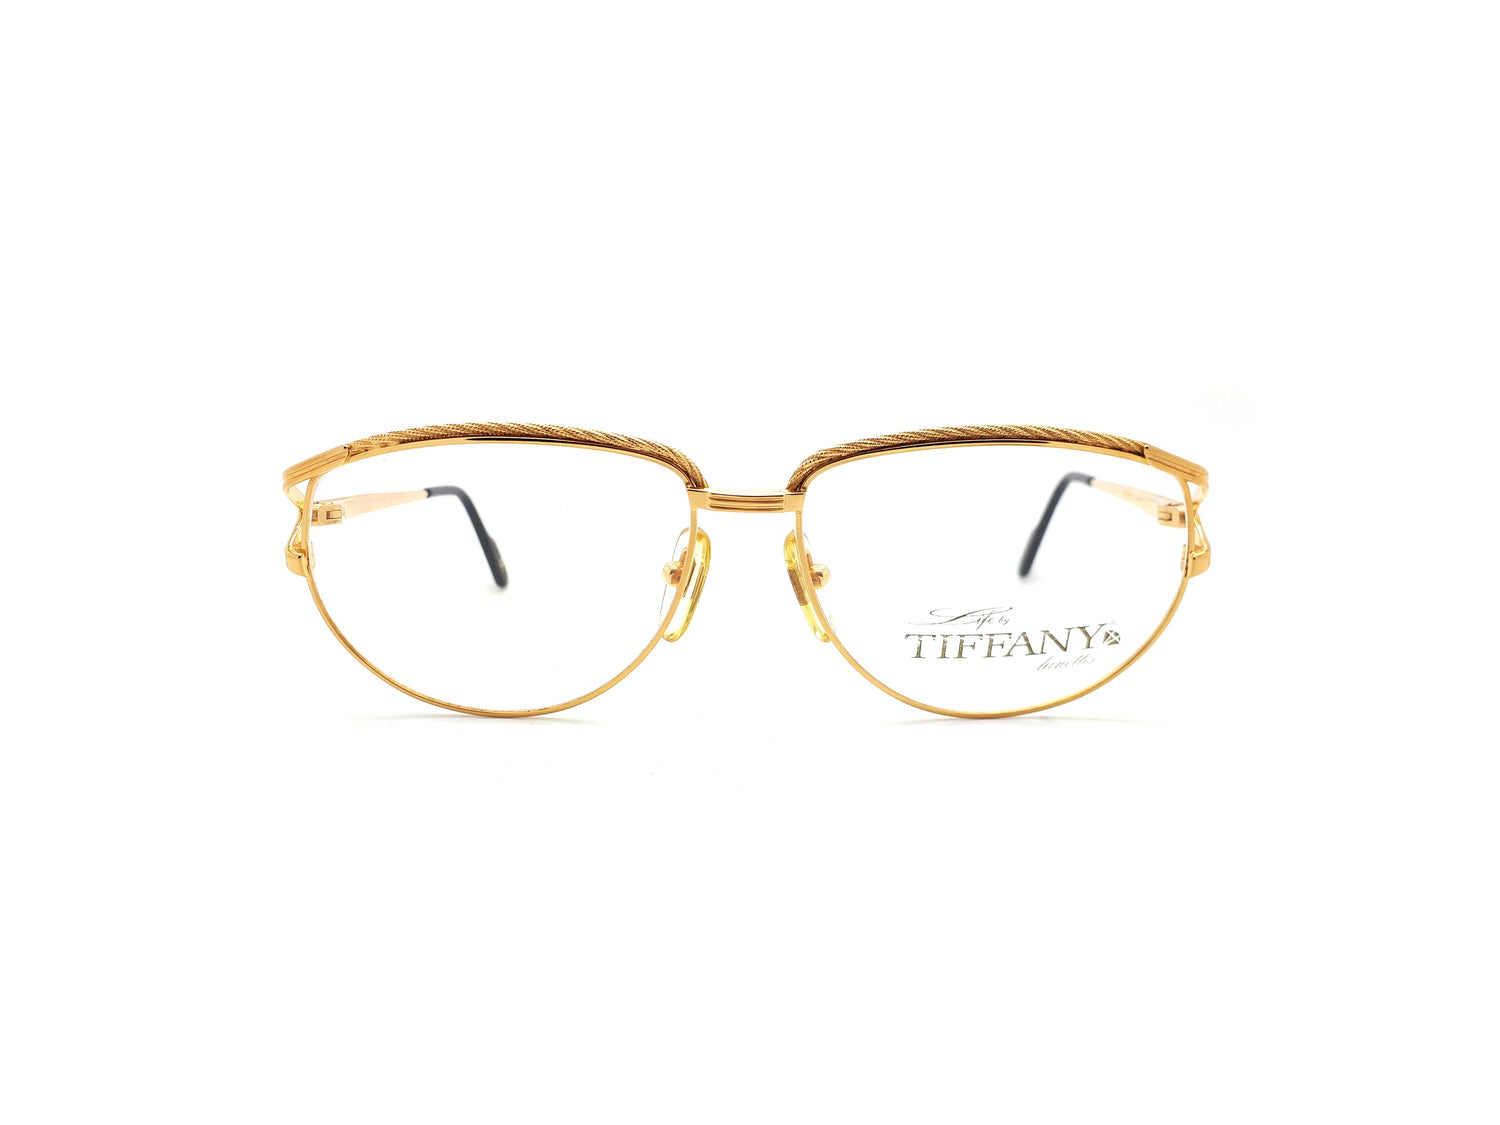 Life by Tiffany Lunettes T312 C4 23KT Gold Plated